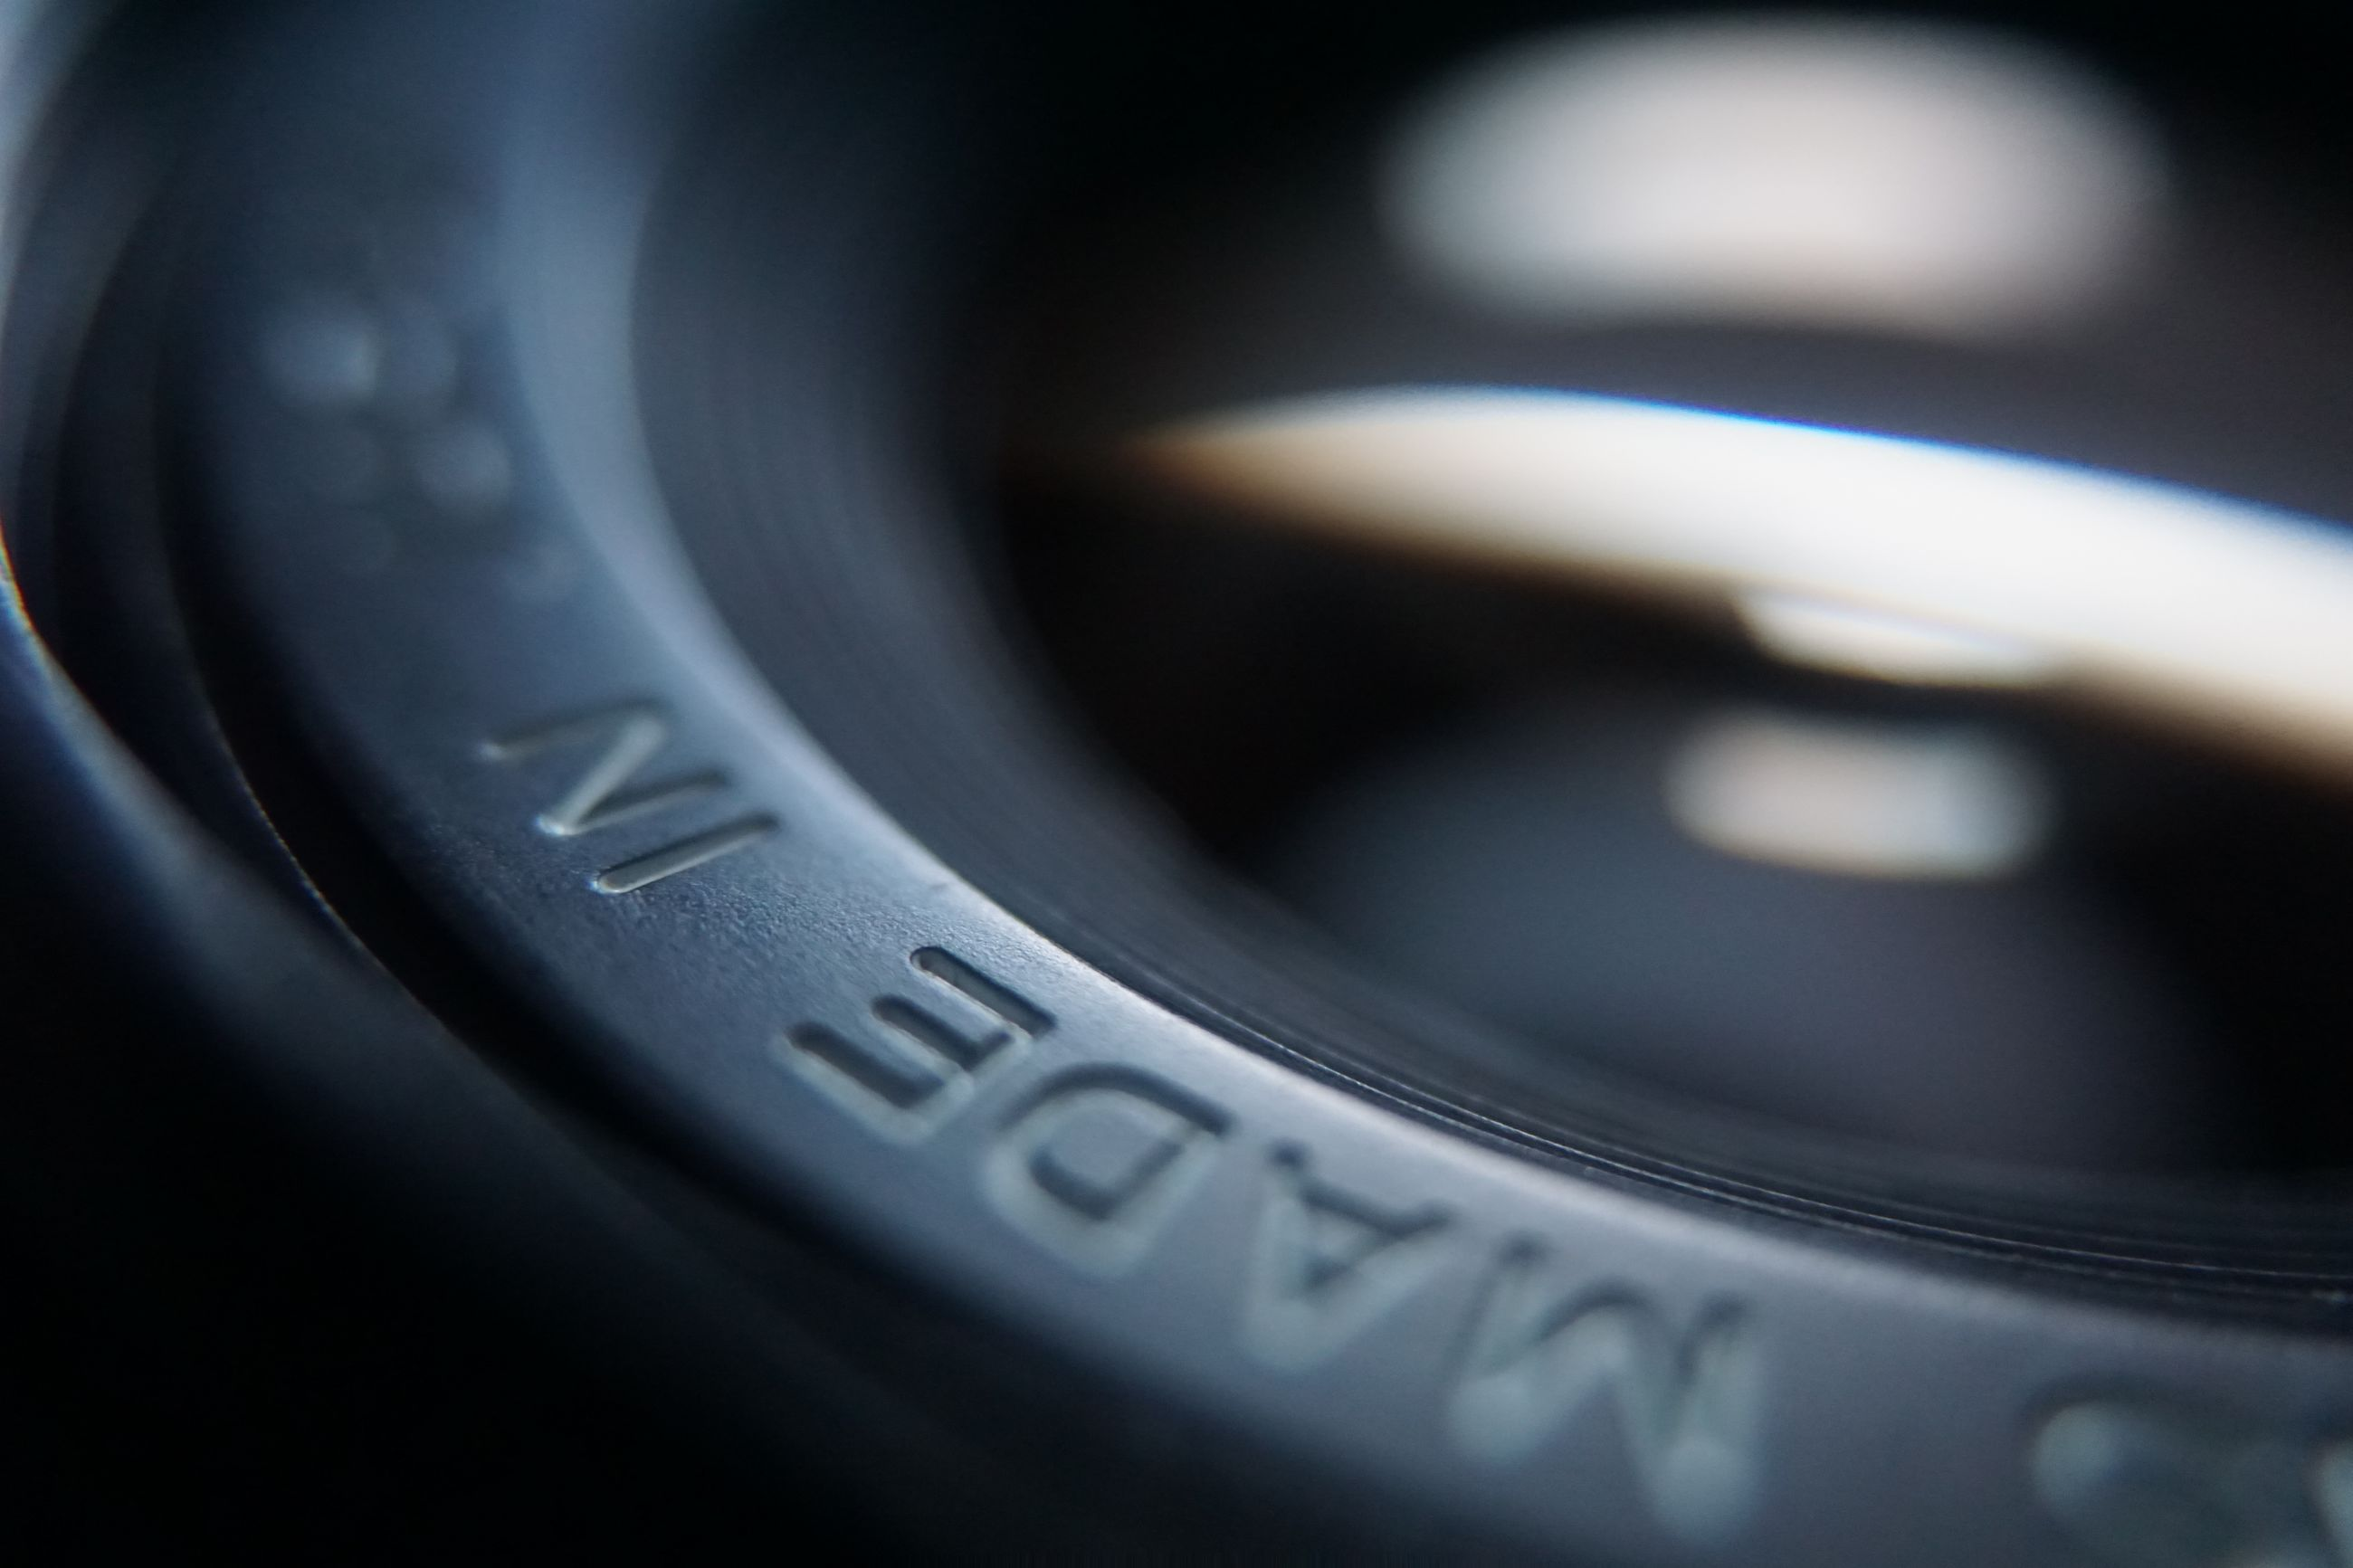 technology, photography themes, close-up, camera - photographic equipment, no people, selective focus, photographic equipment, camera, lens - optical instrument, indoors, digital camera, text, western script, black color, number, equipment, optical instrument, still life, studio shot, communication, slr camera